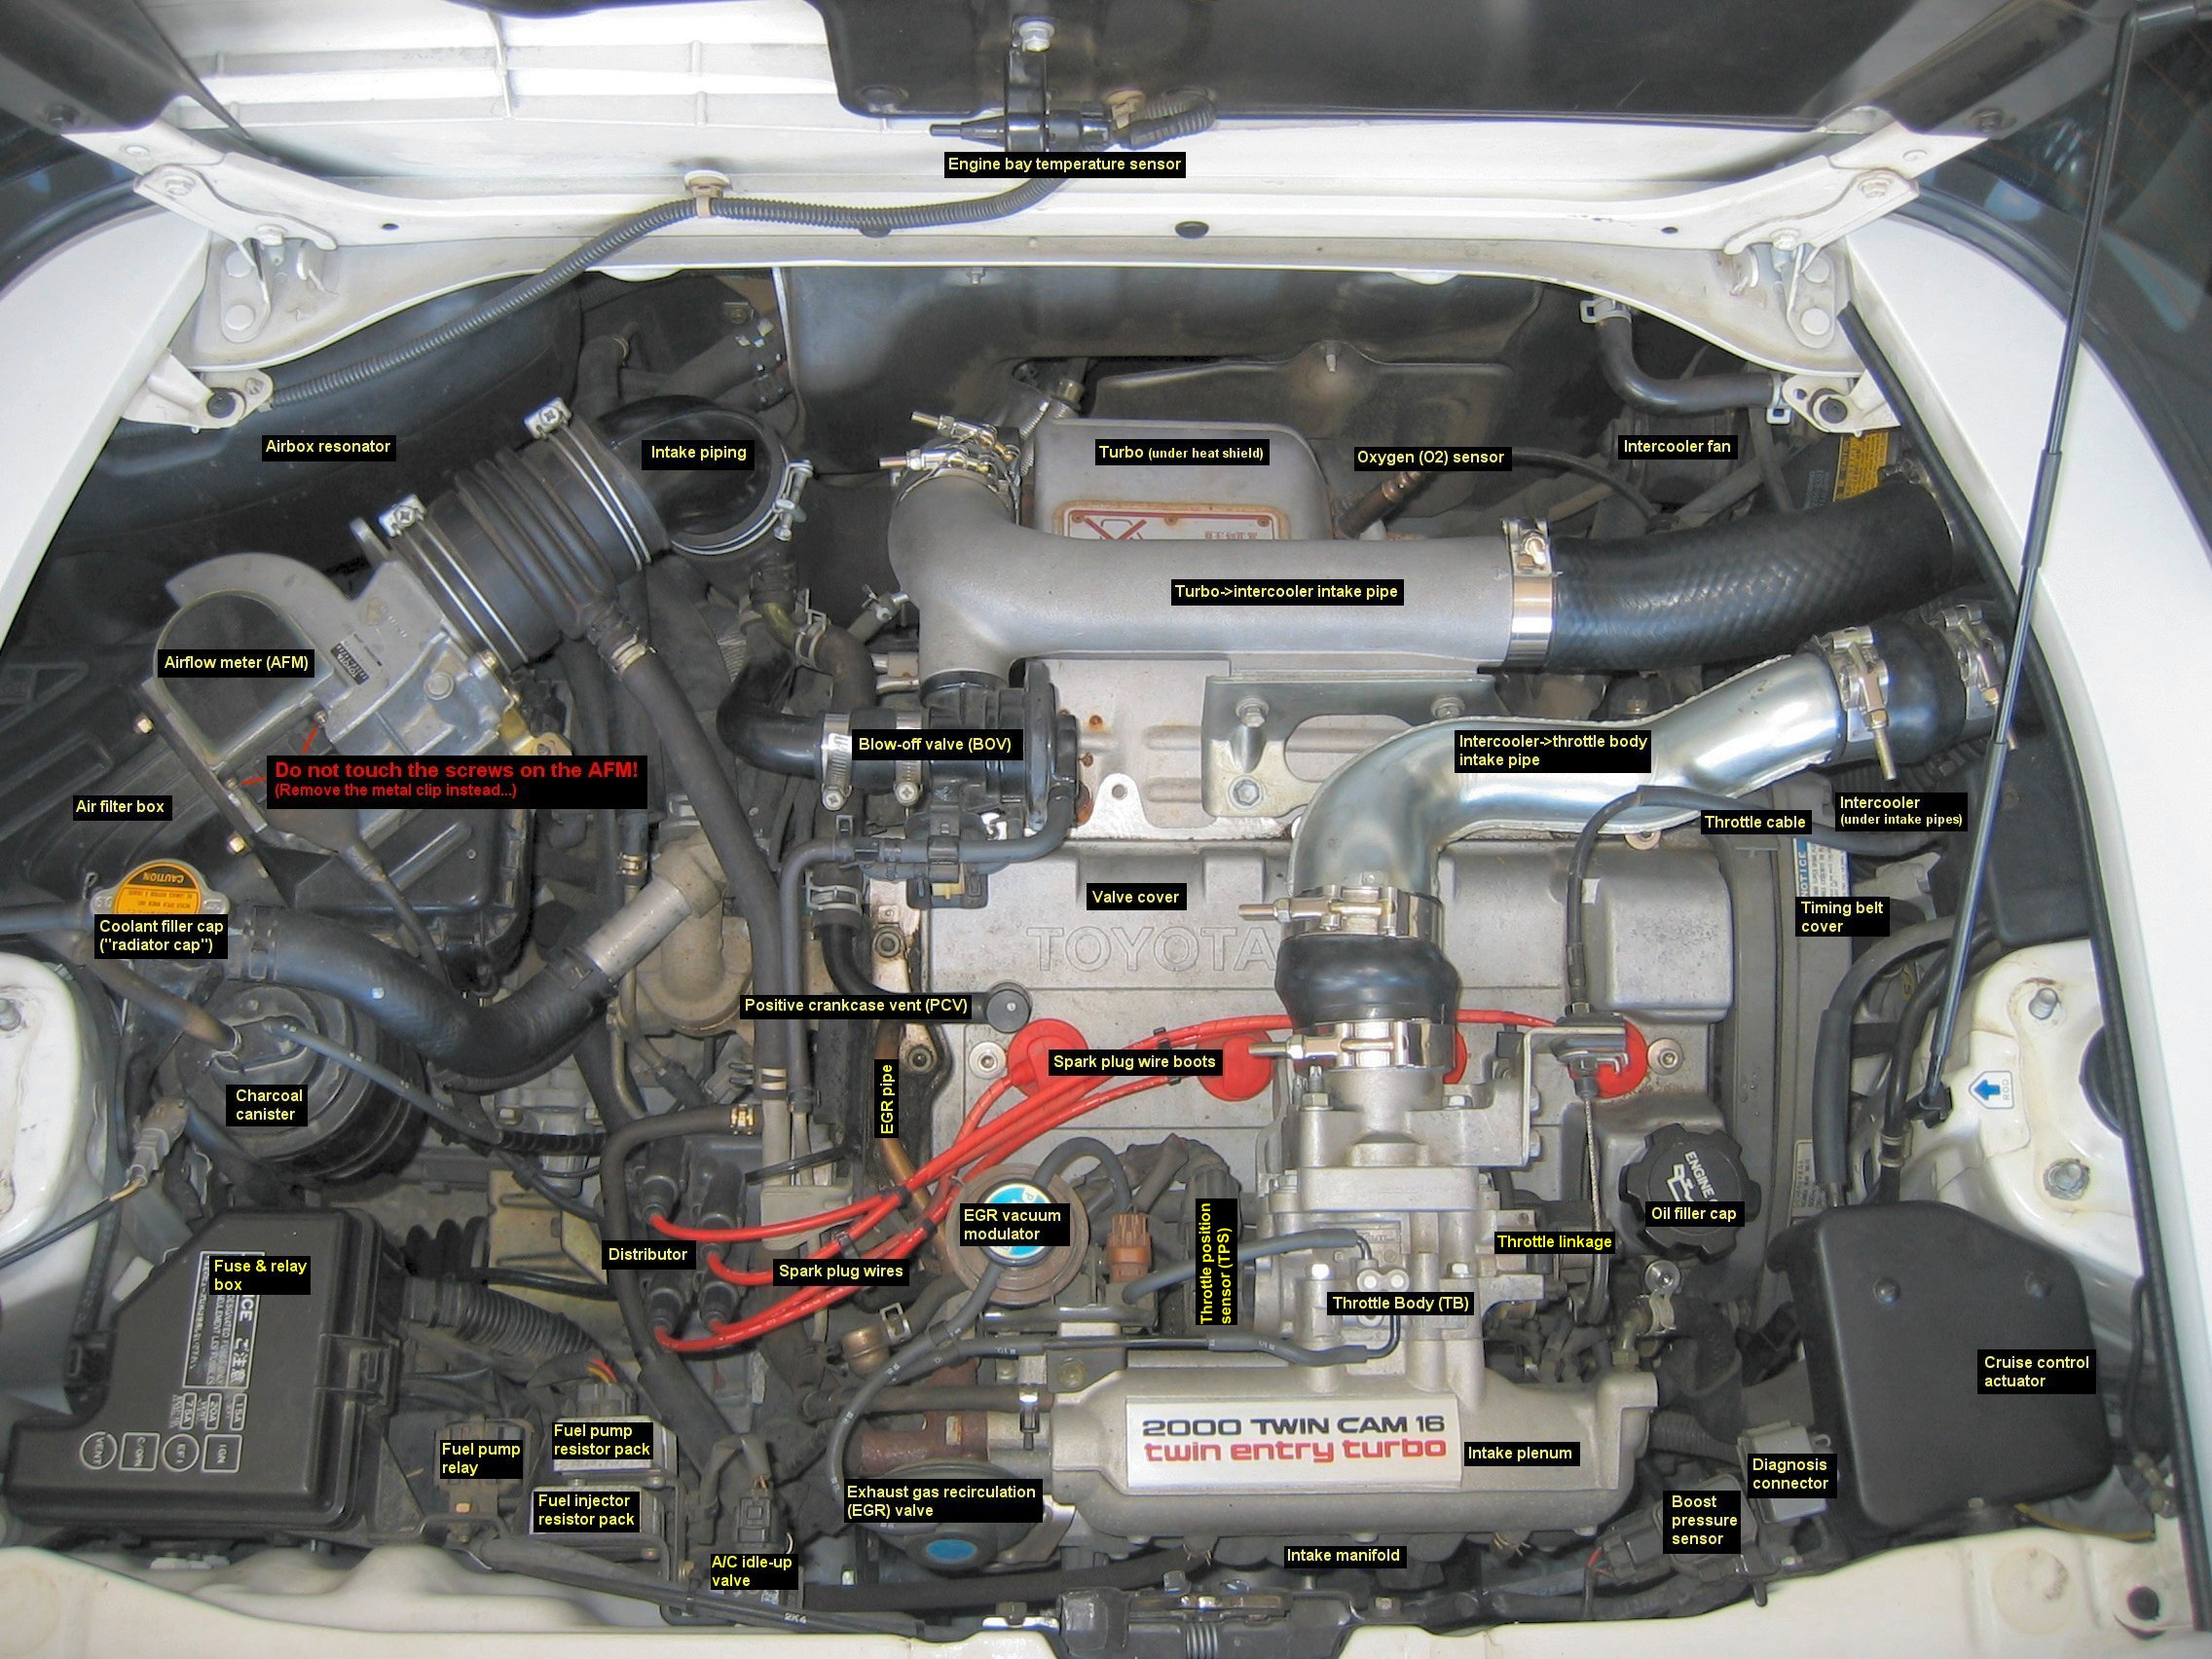 2000 Toyota Celica Gts Engine Diagram Wiring Library Click Larger Labeled 3sgte Bay